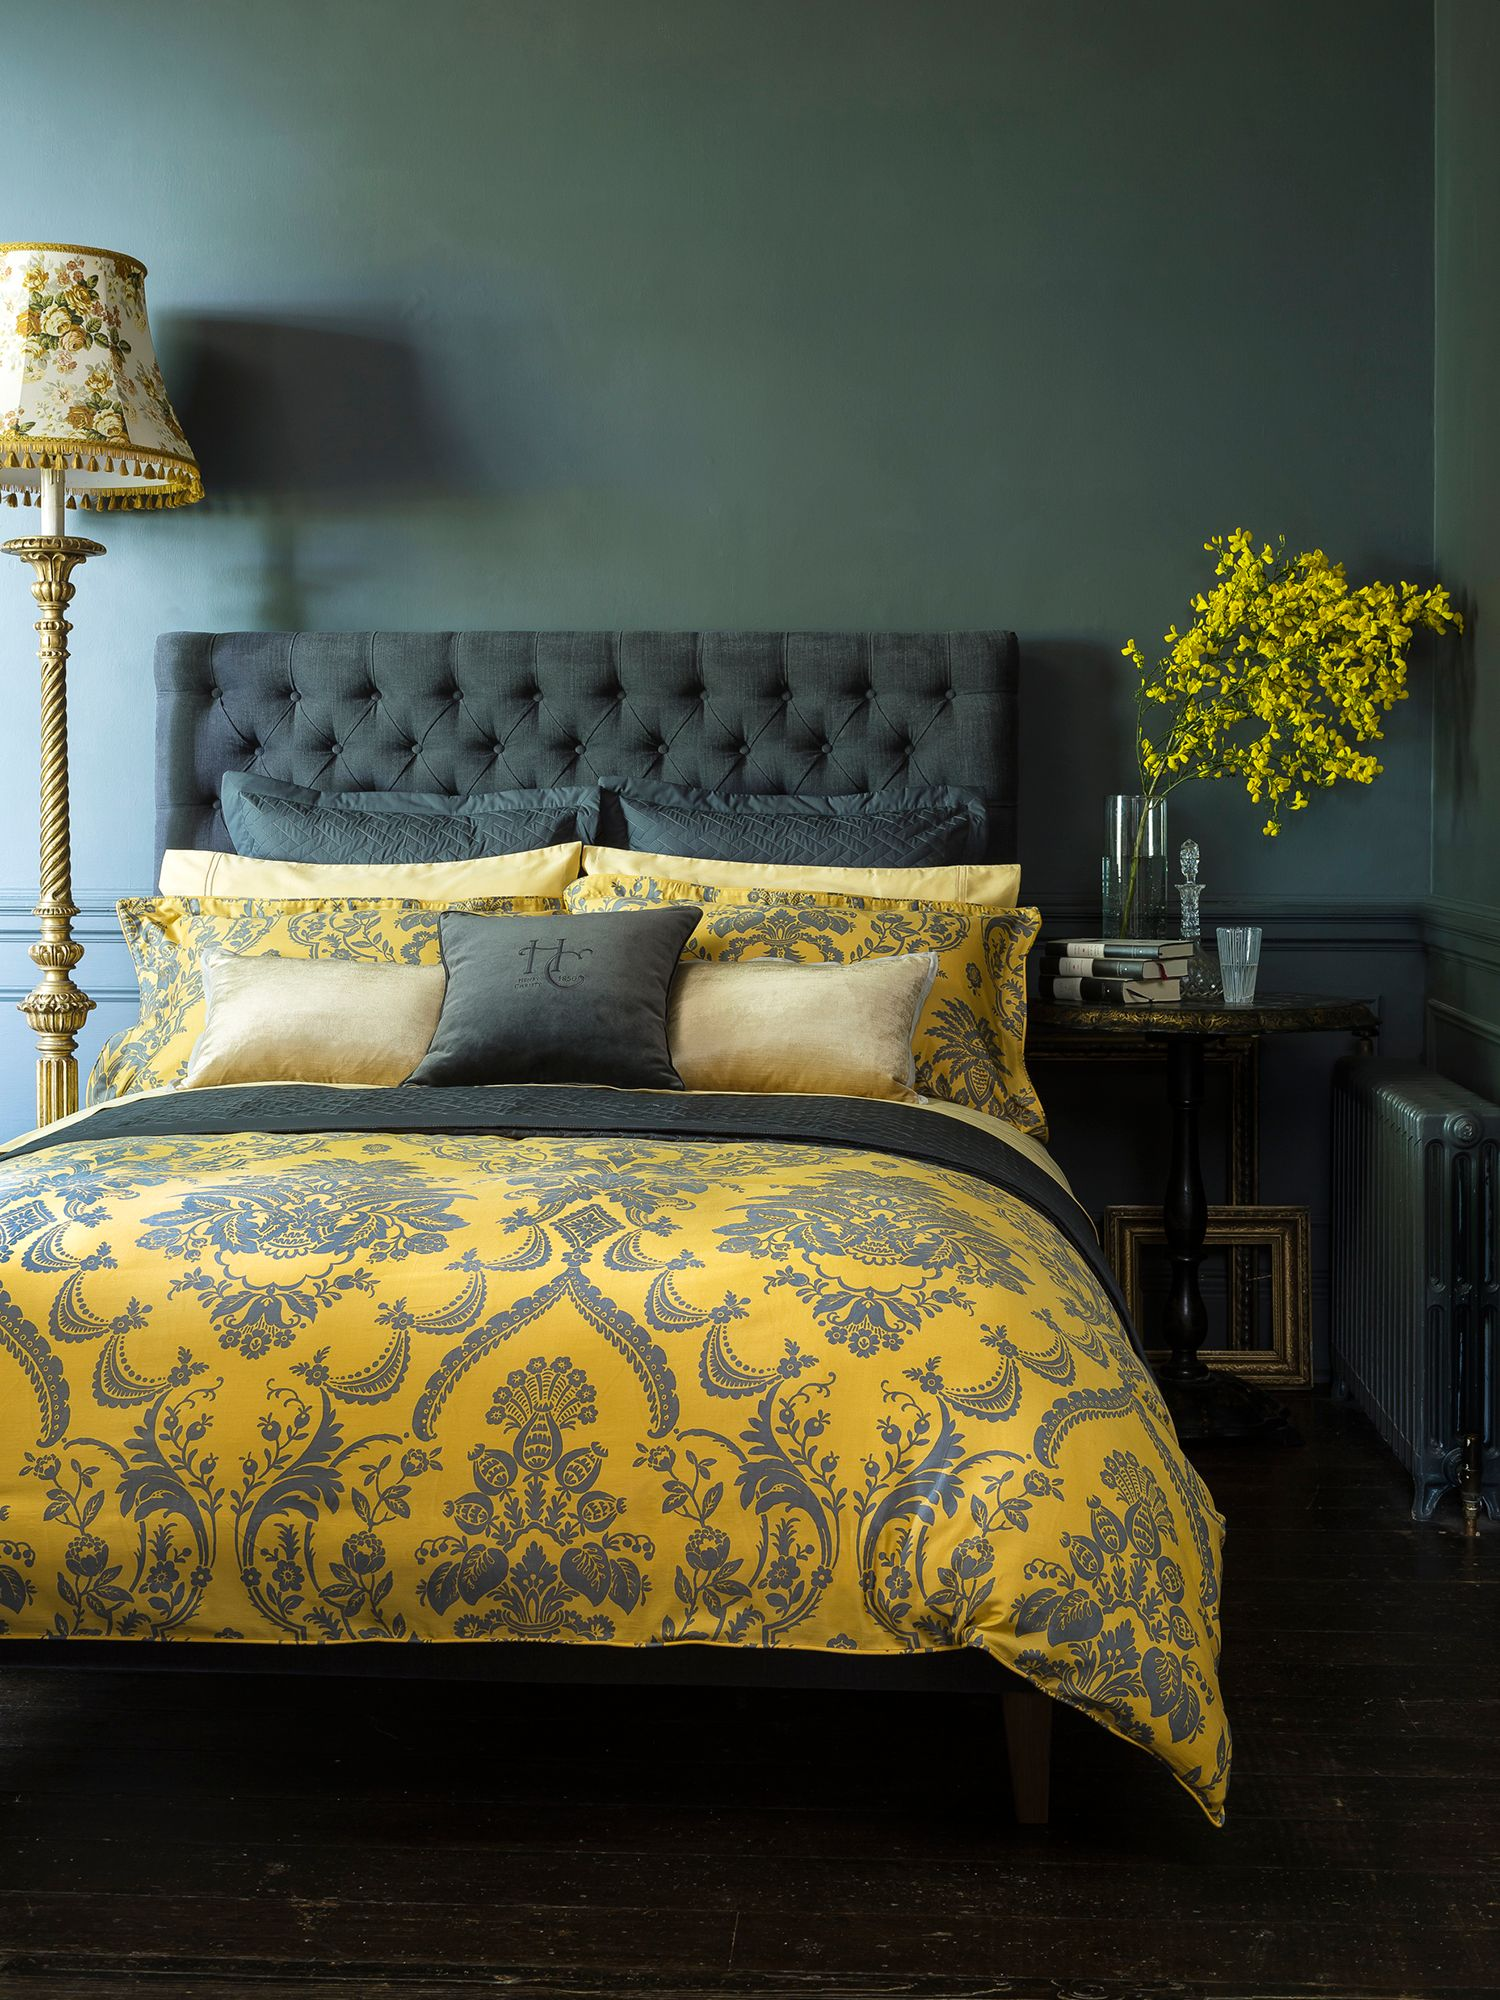 Morton bed linen in ochre